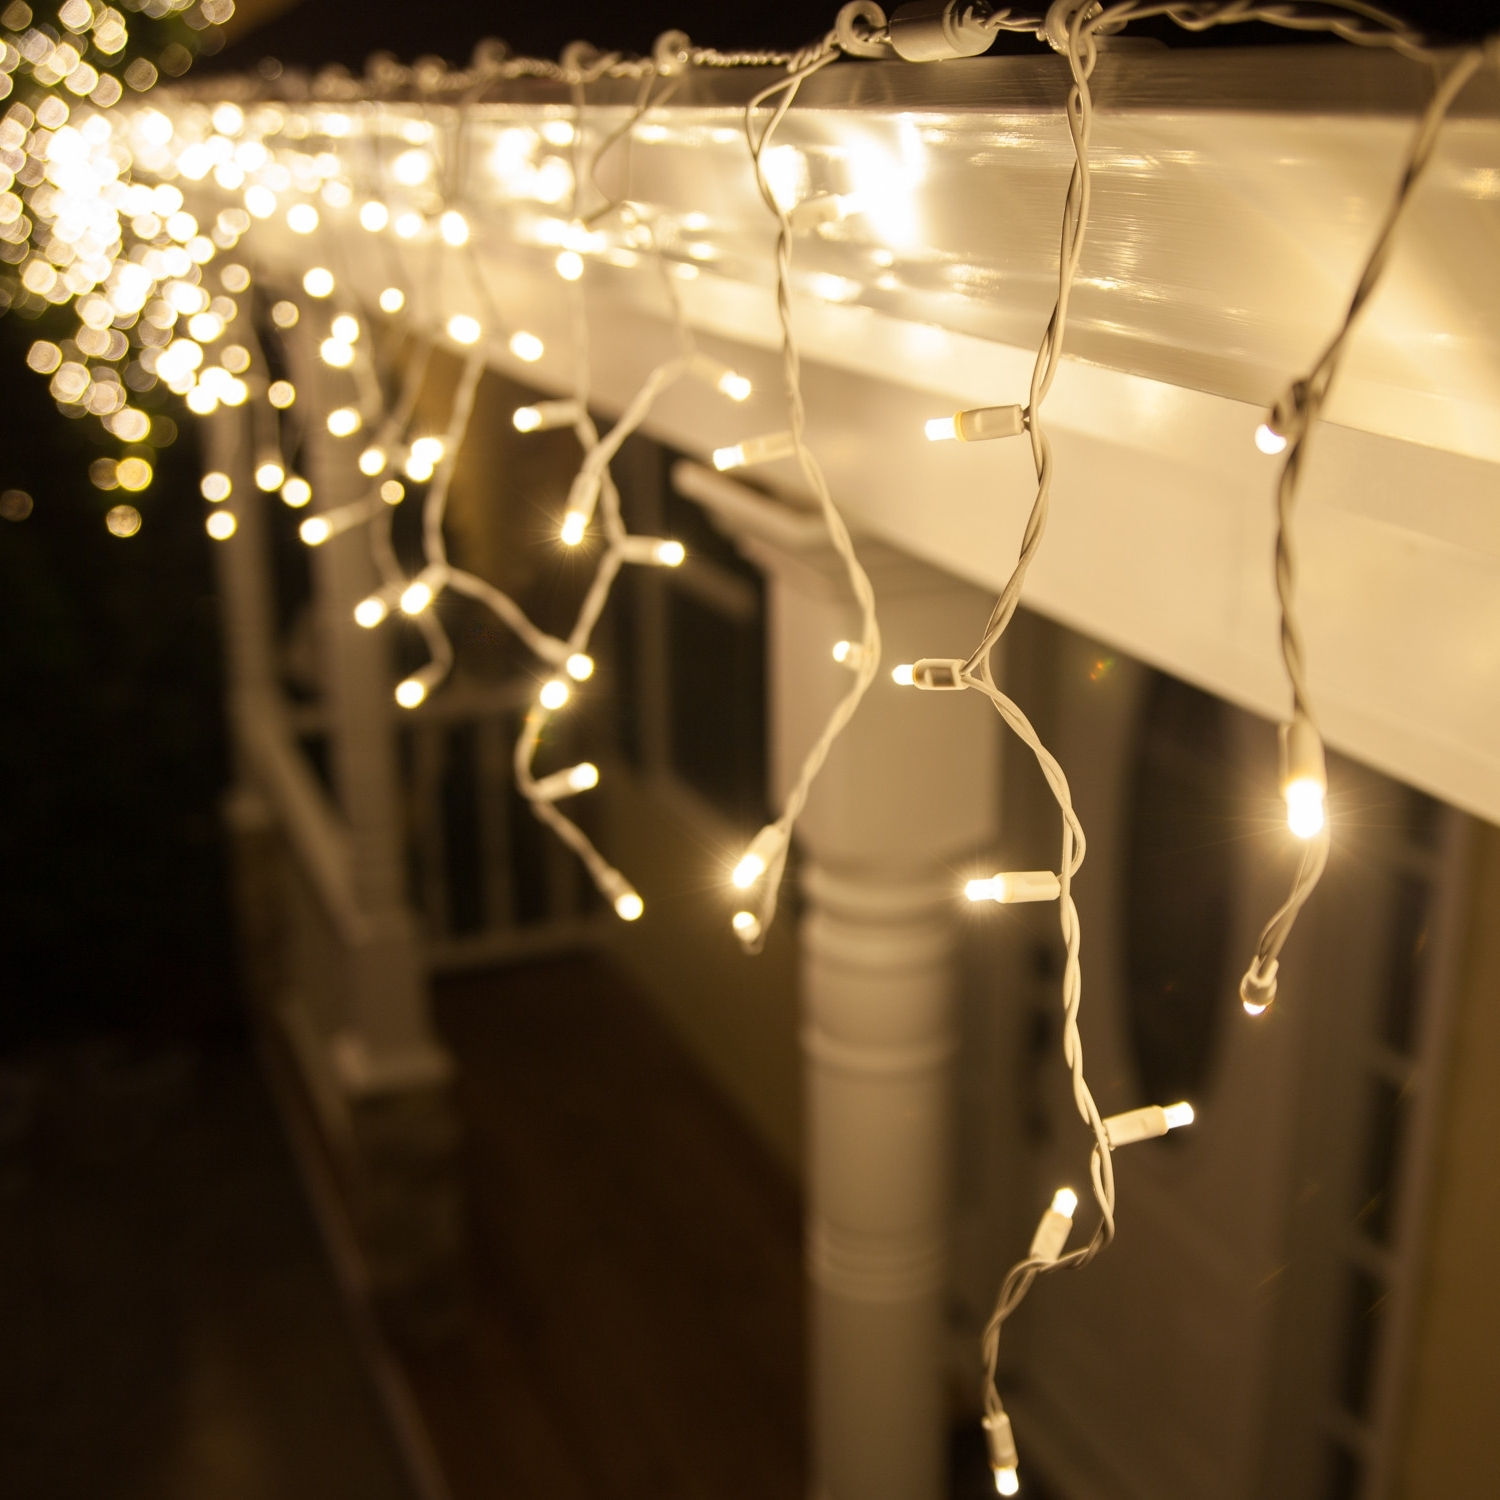 Hang Warm White Icicle Lights Outdoors And Inside Too! So Cozy For Throughout Recent Outdoor Hanging Xmas Lights (View 7 of 20)